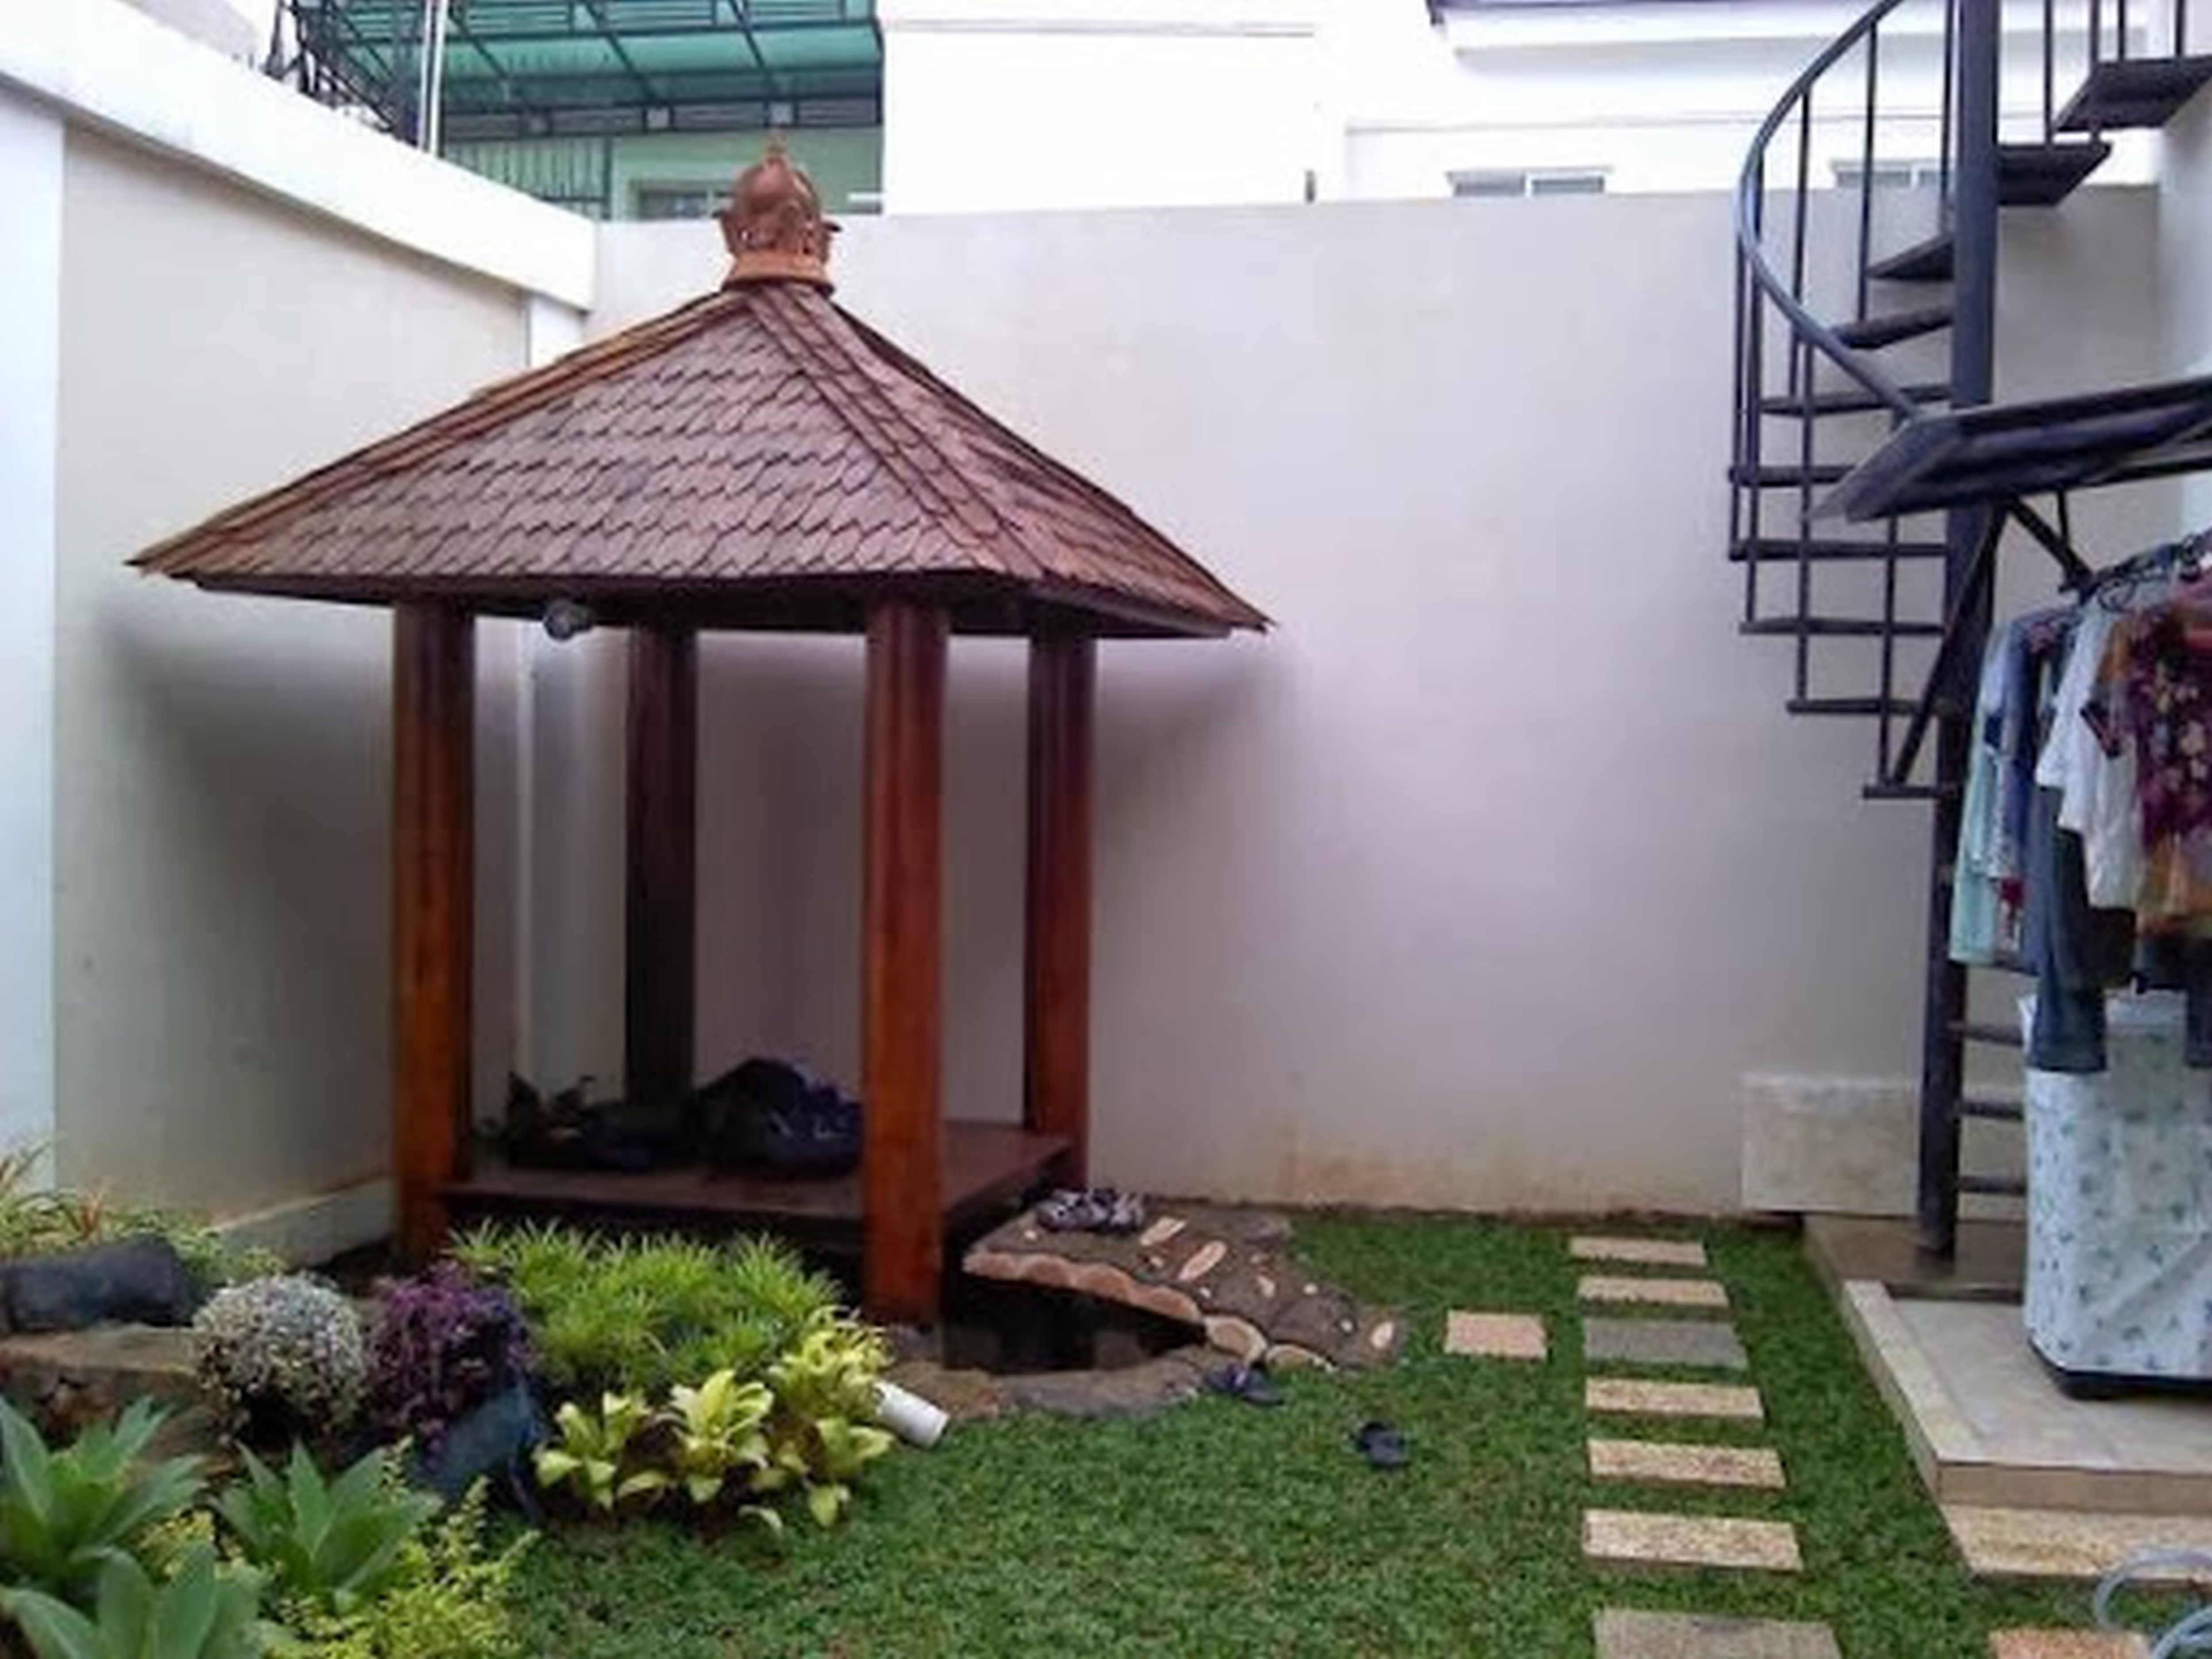 Decoration Modern Design Outdoor Canopy Small Gazebo With Roof And Poles Beside High Wall Also & Decoration Modern Design Outdoor Canopy Small Gazebo With Roof ...